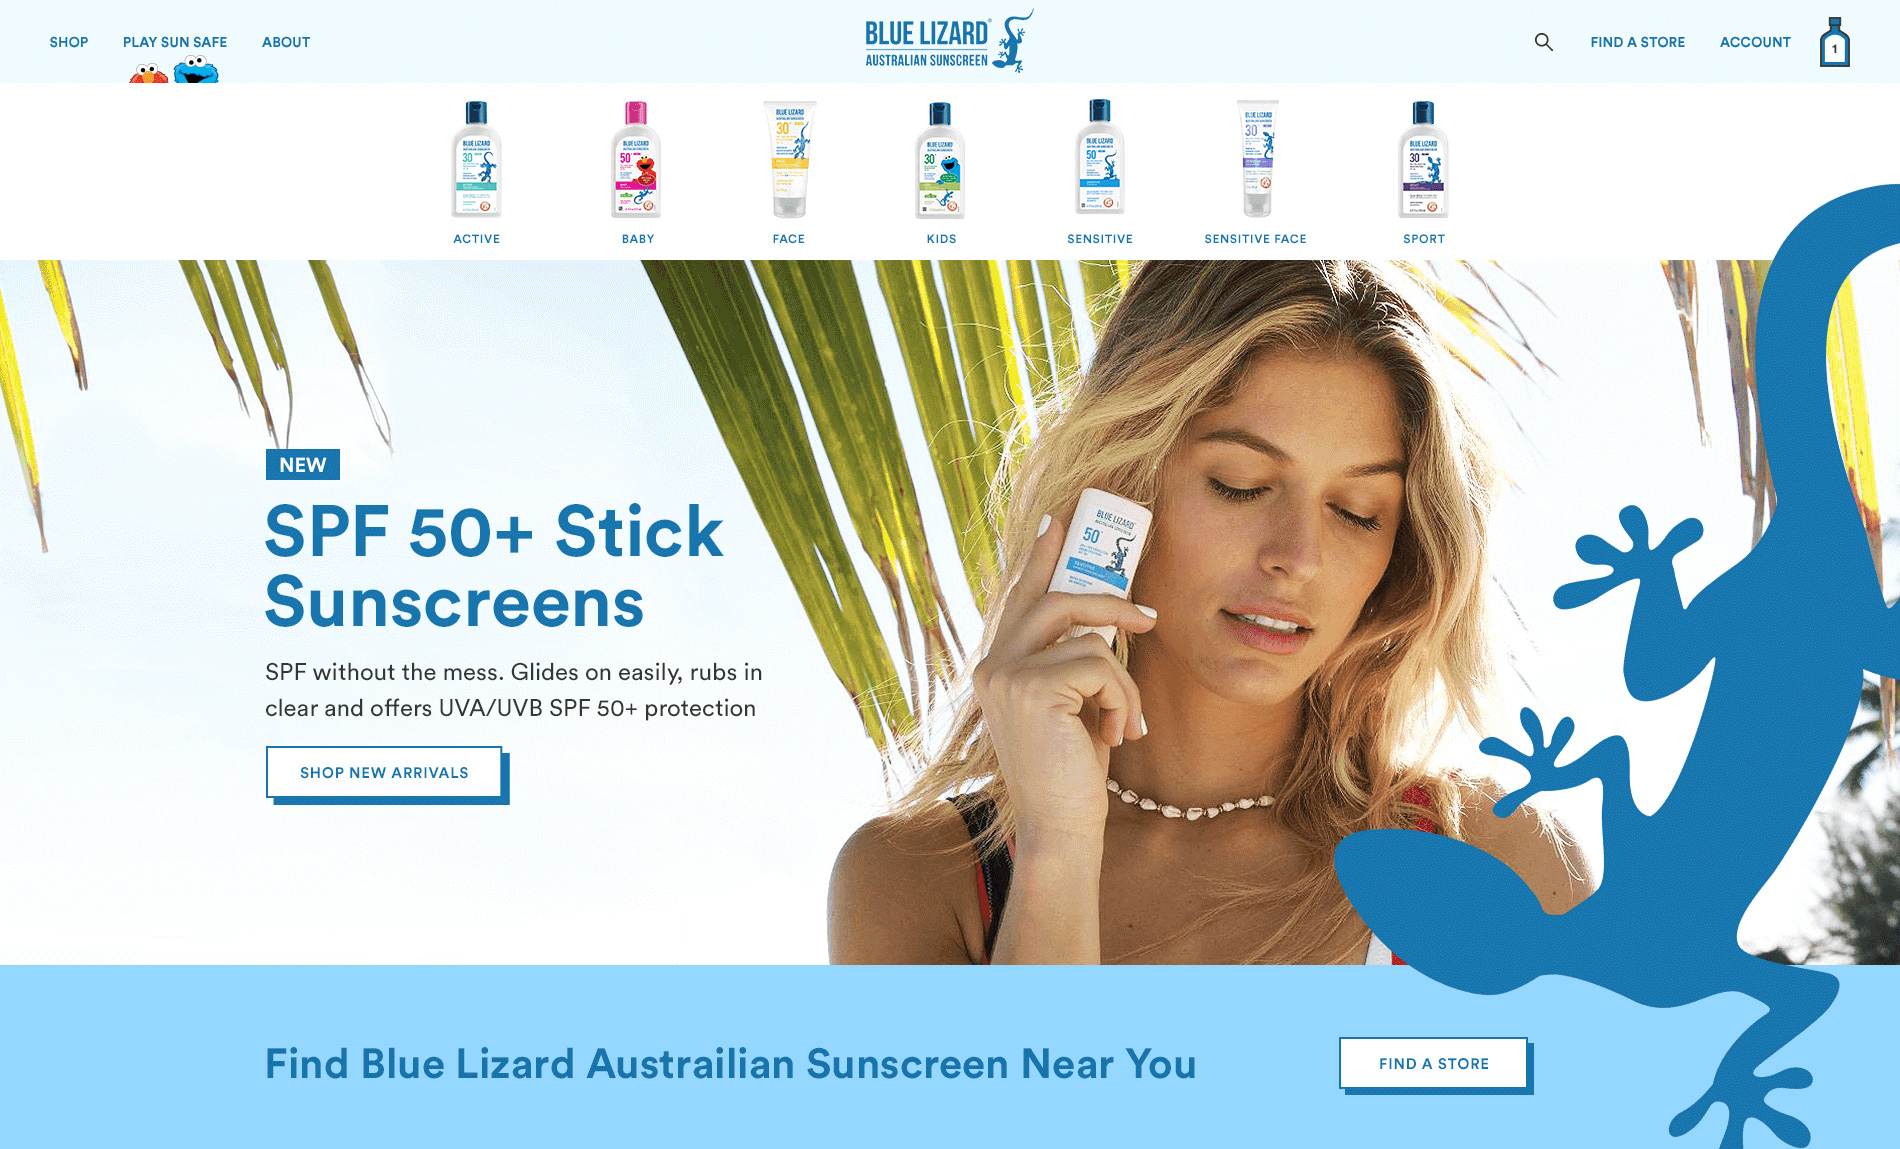 Digital Marketing Agency Website Mockup Featuring Blue Lizard Brand & Young Lady with Sunscreen